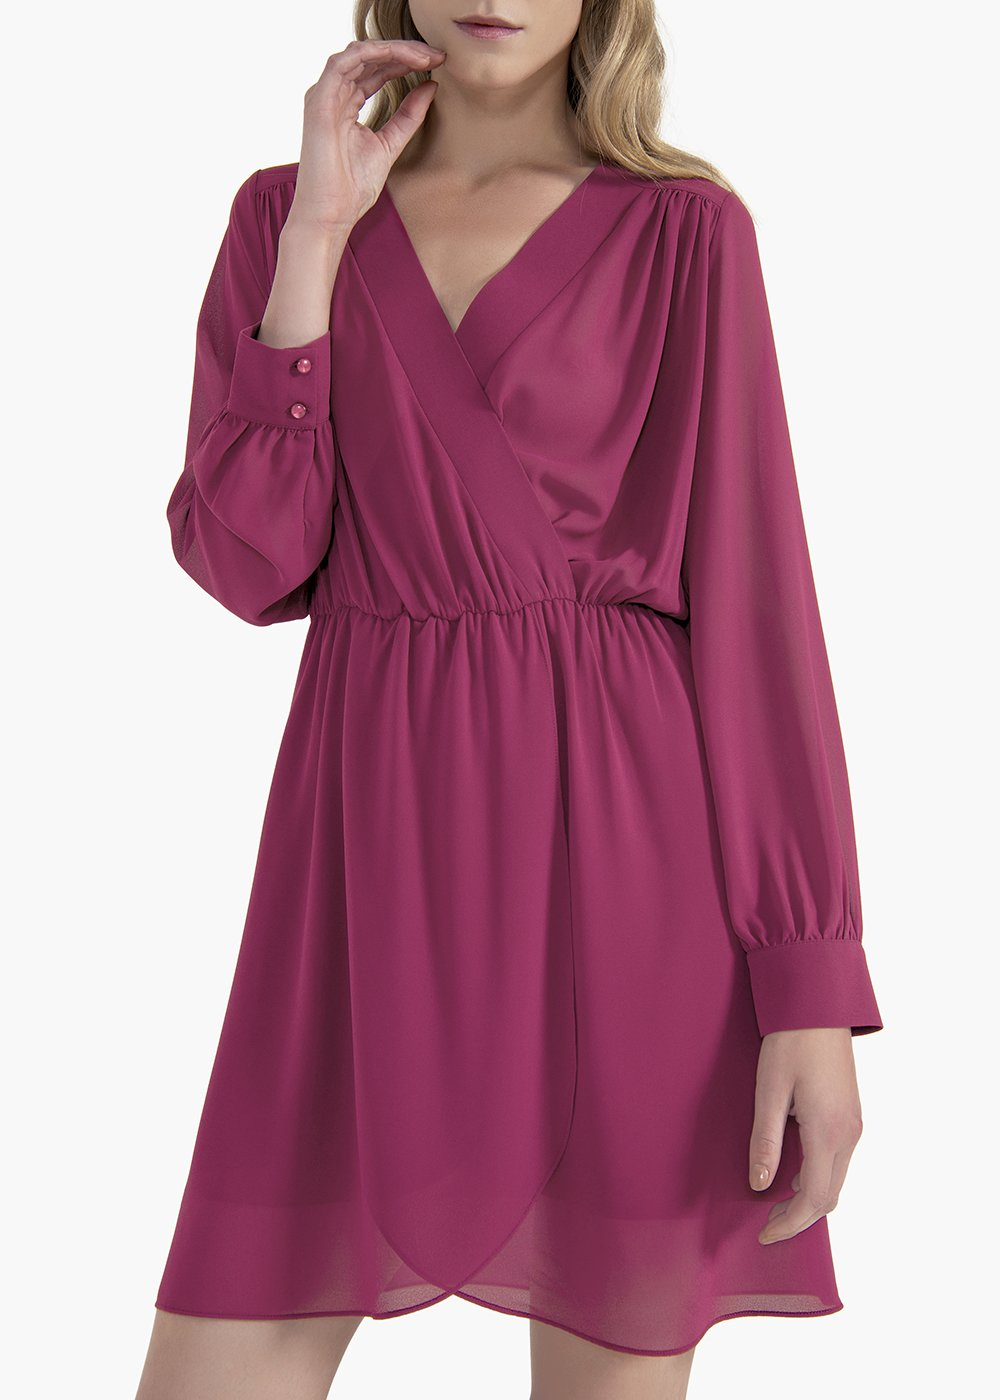 Andres georgette dress with crossover neckline - Magnolia - Woman